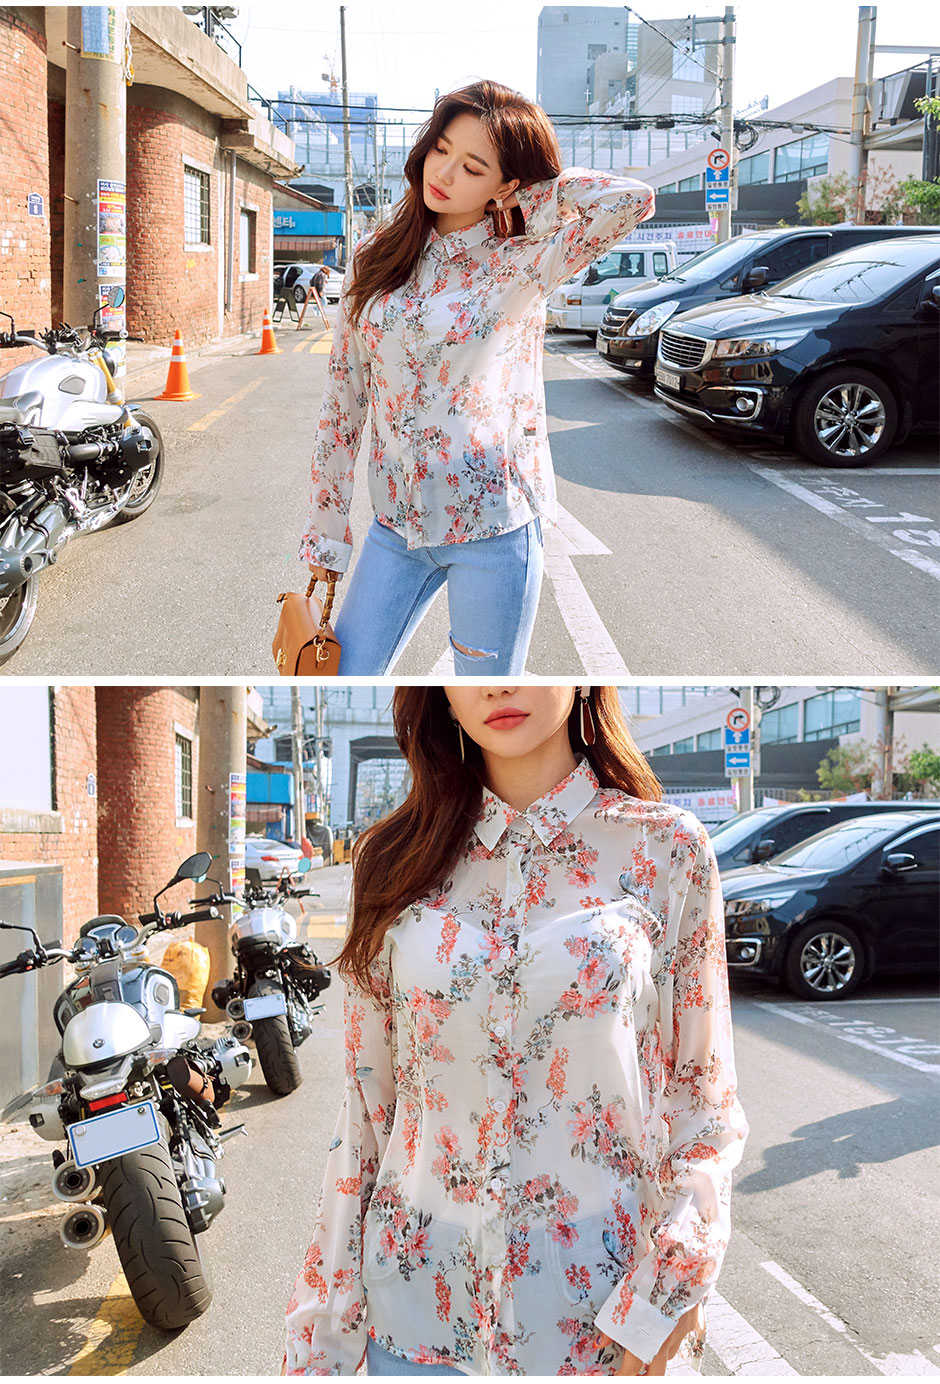 //cdn.nhanh.vn/cdn/store/29770/psCT/20181010/9452006/CHUU_By_My_Side_Flower_Blouse_(29).jpg